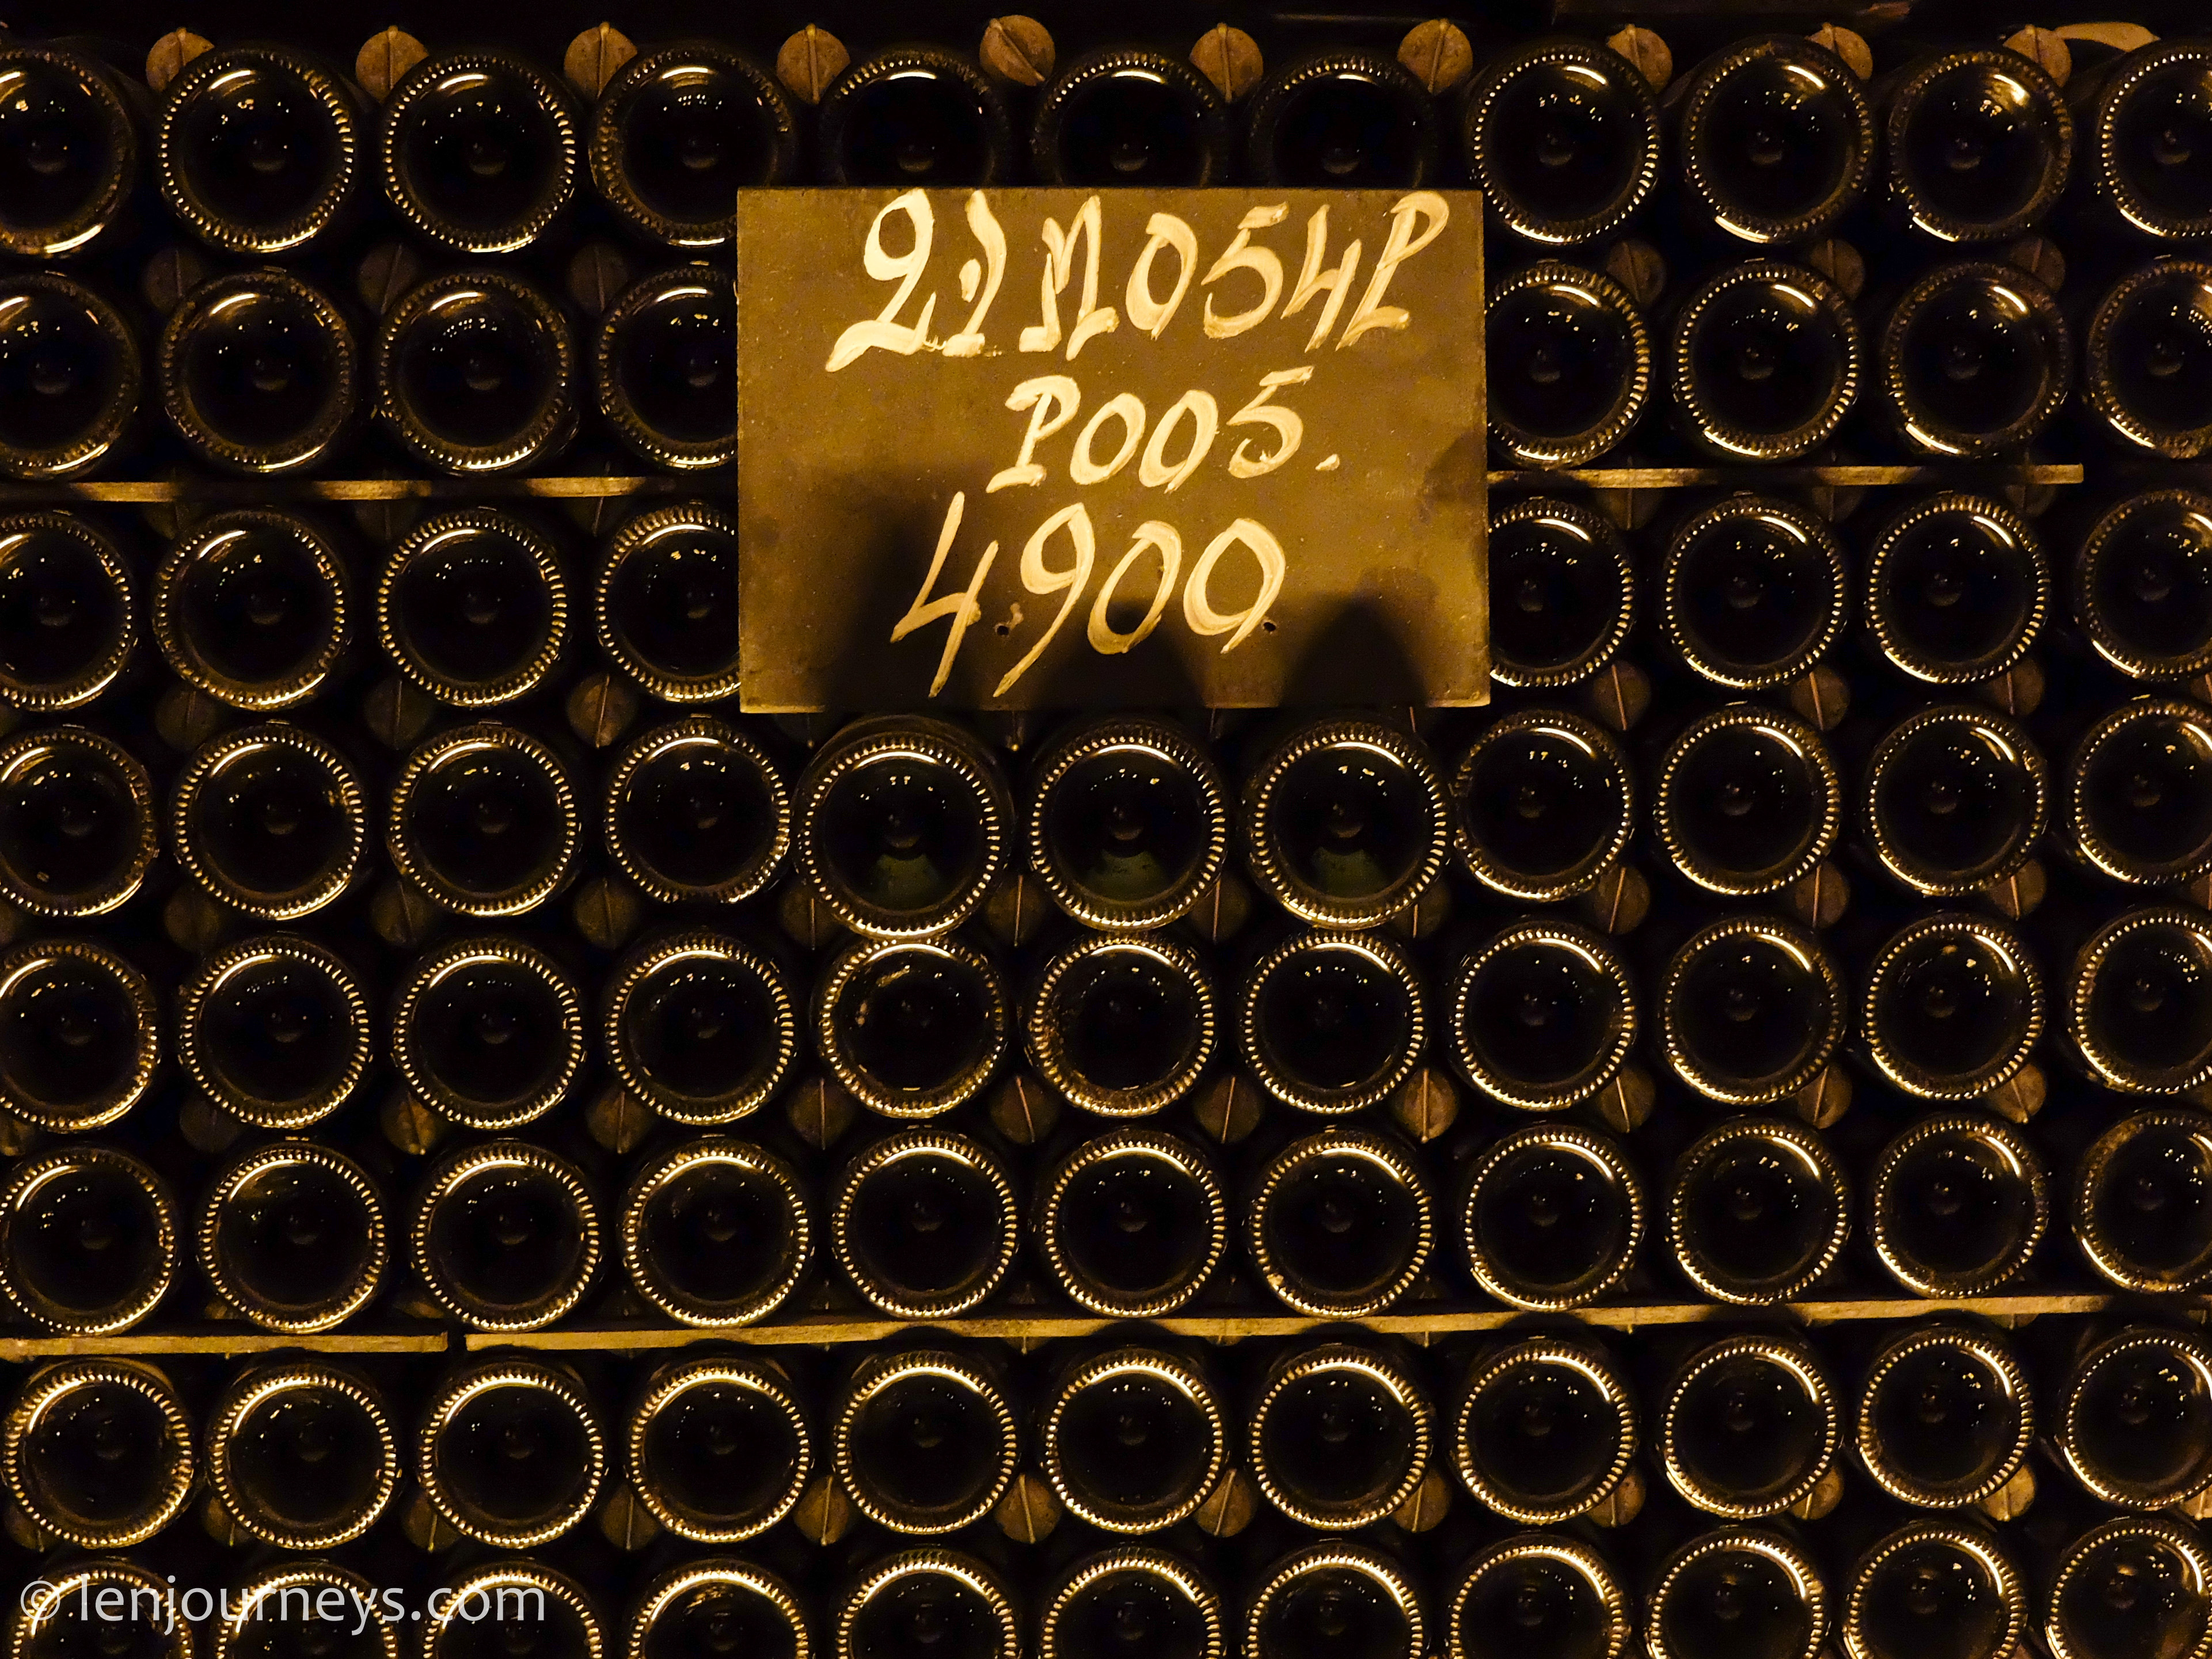 Champagne bottles in Moët and Chandon Cellar